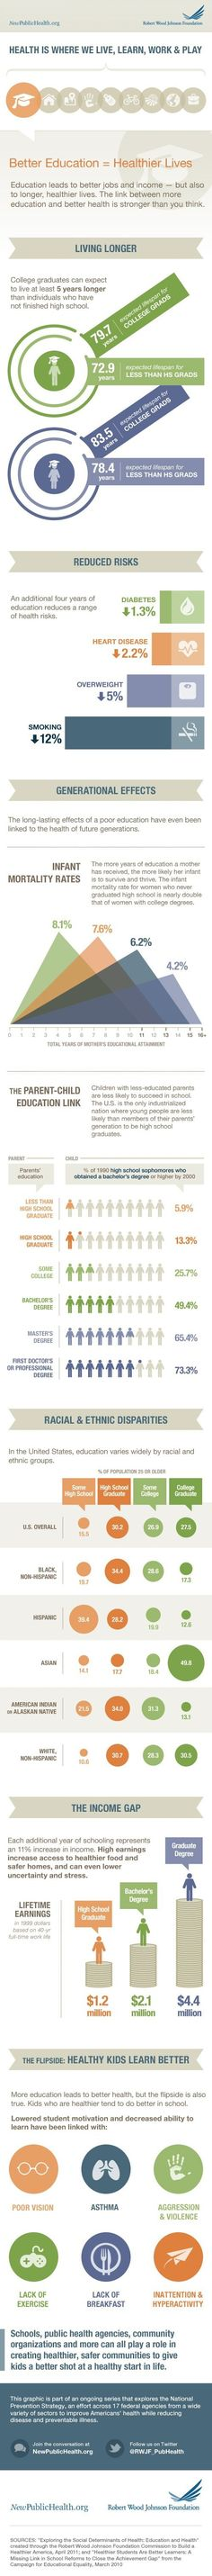 Educational : What A Great Infographic On The Importance Of Education | Larry Ferlazzos